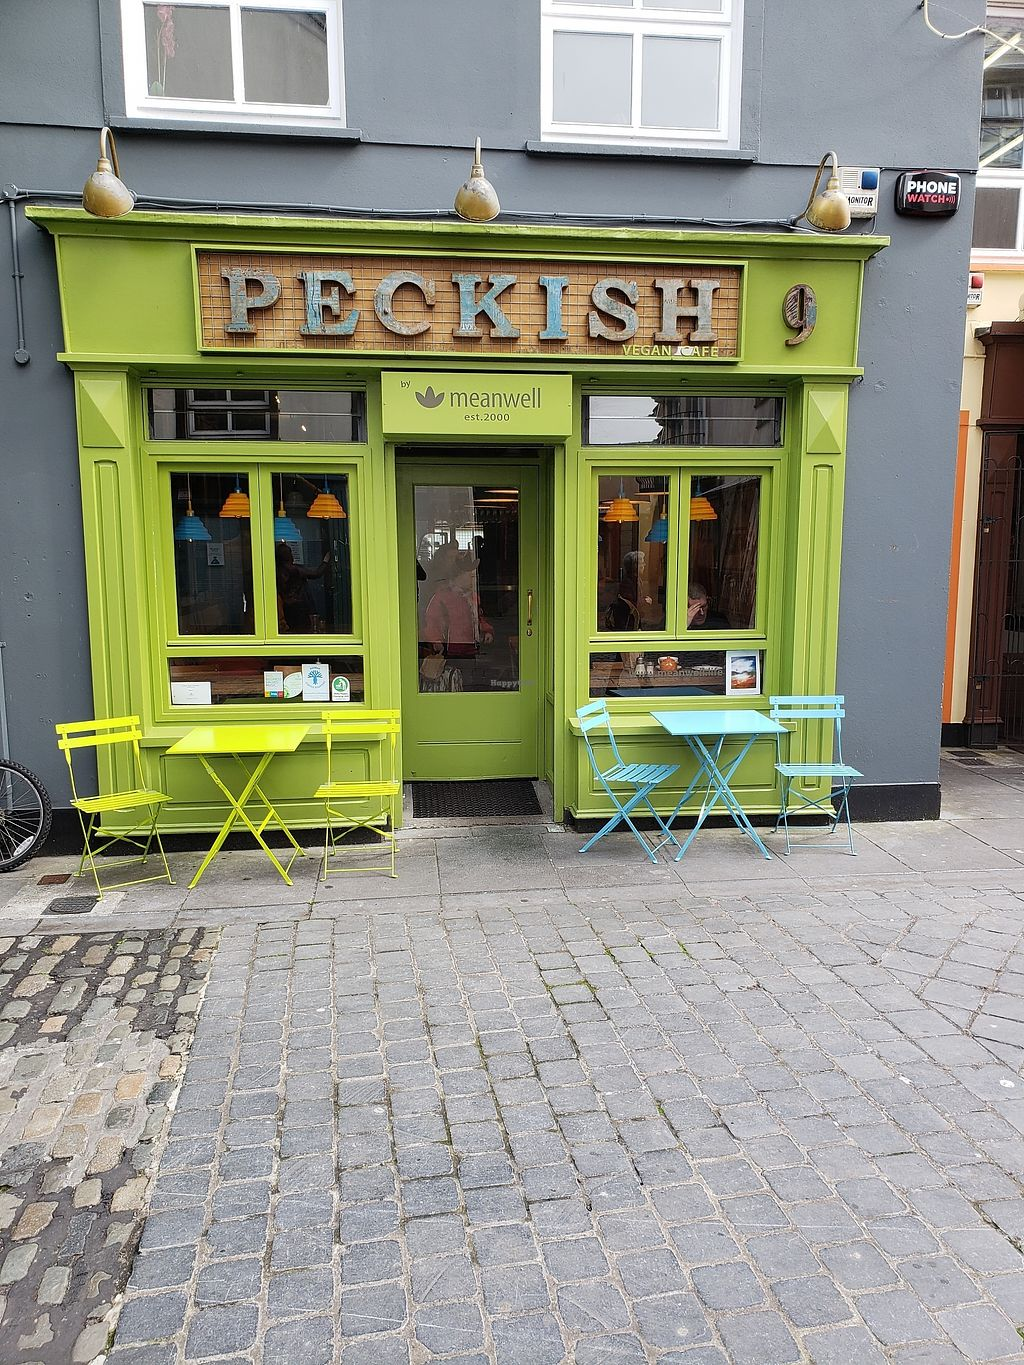 """Photo of Peckish Cafe  by <a href=""""/members/profile/reuvenk"""">reuvenk</a> <br/>Peckish cafe, Ennis, Ireland <br/> April 17, 2018  - <a href='/contact/abuse/image/78253/387081'>Report</a>"""